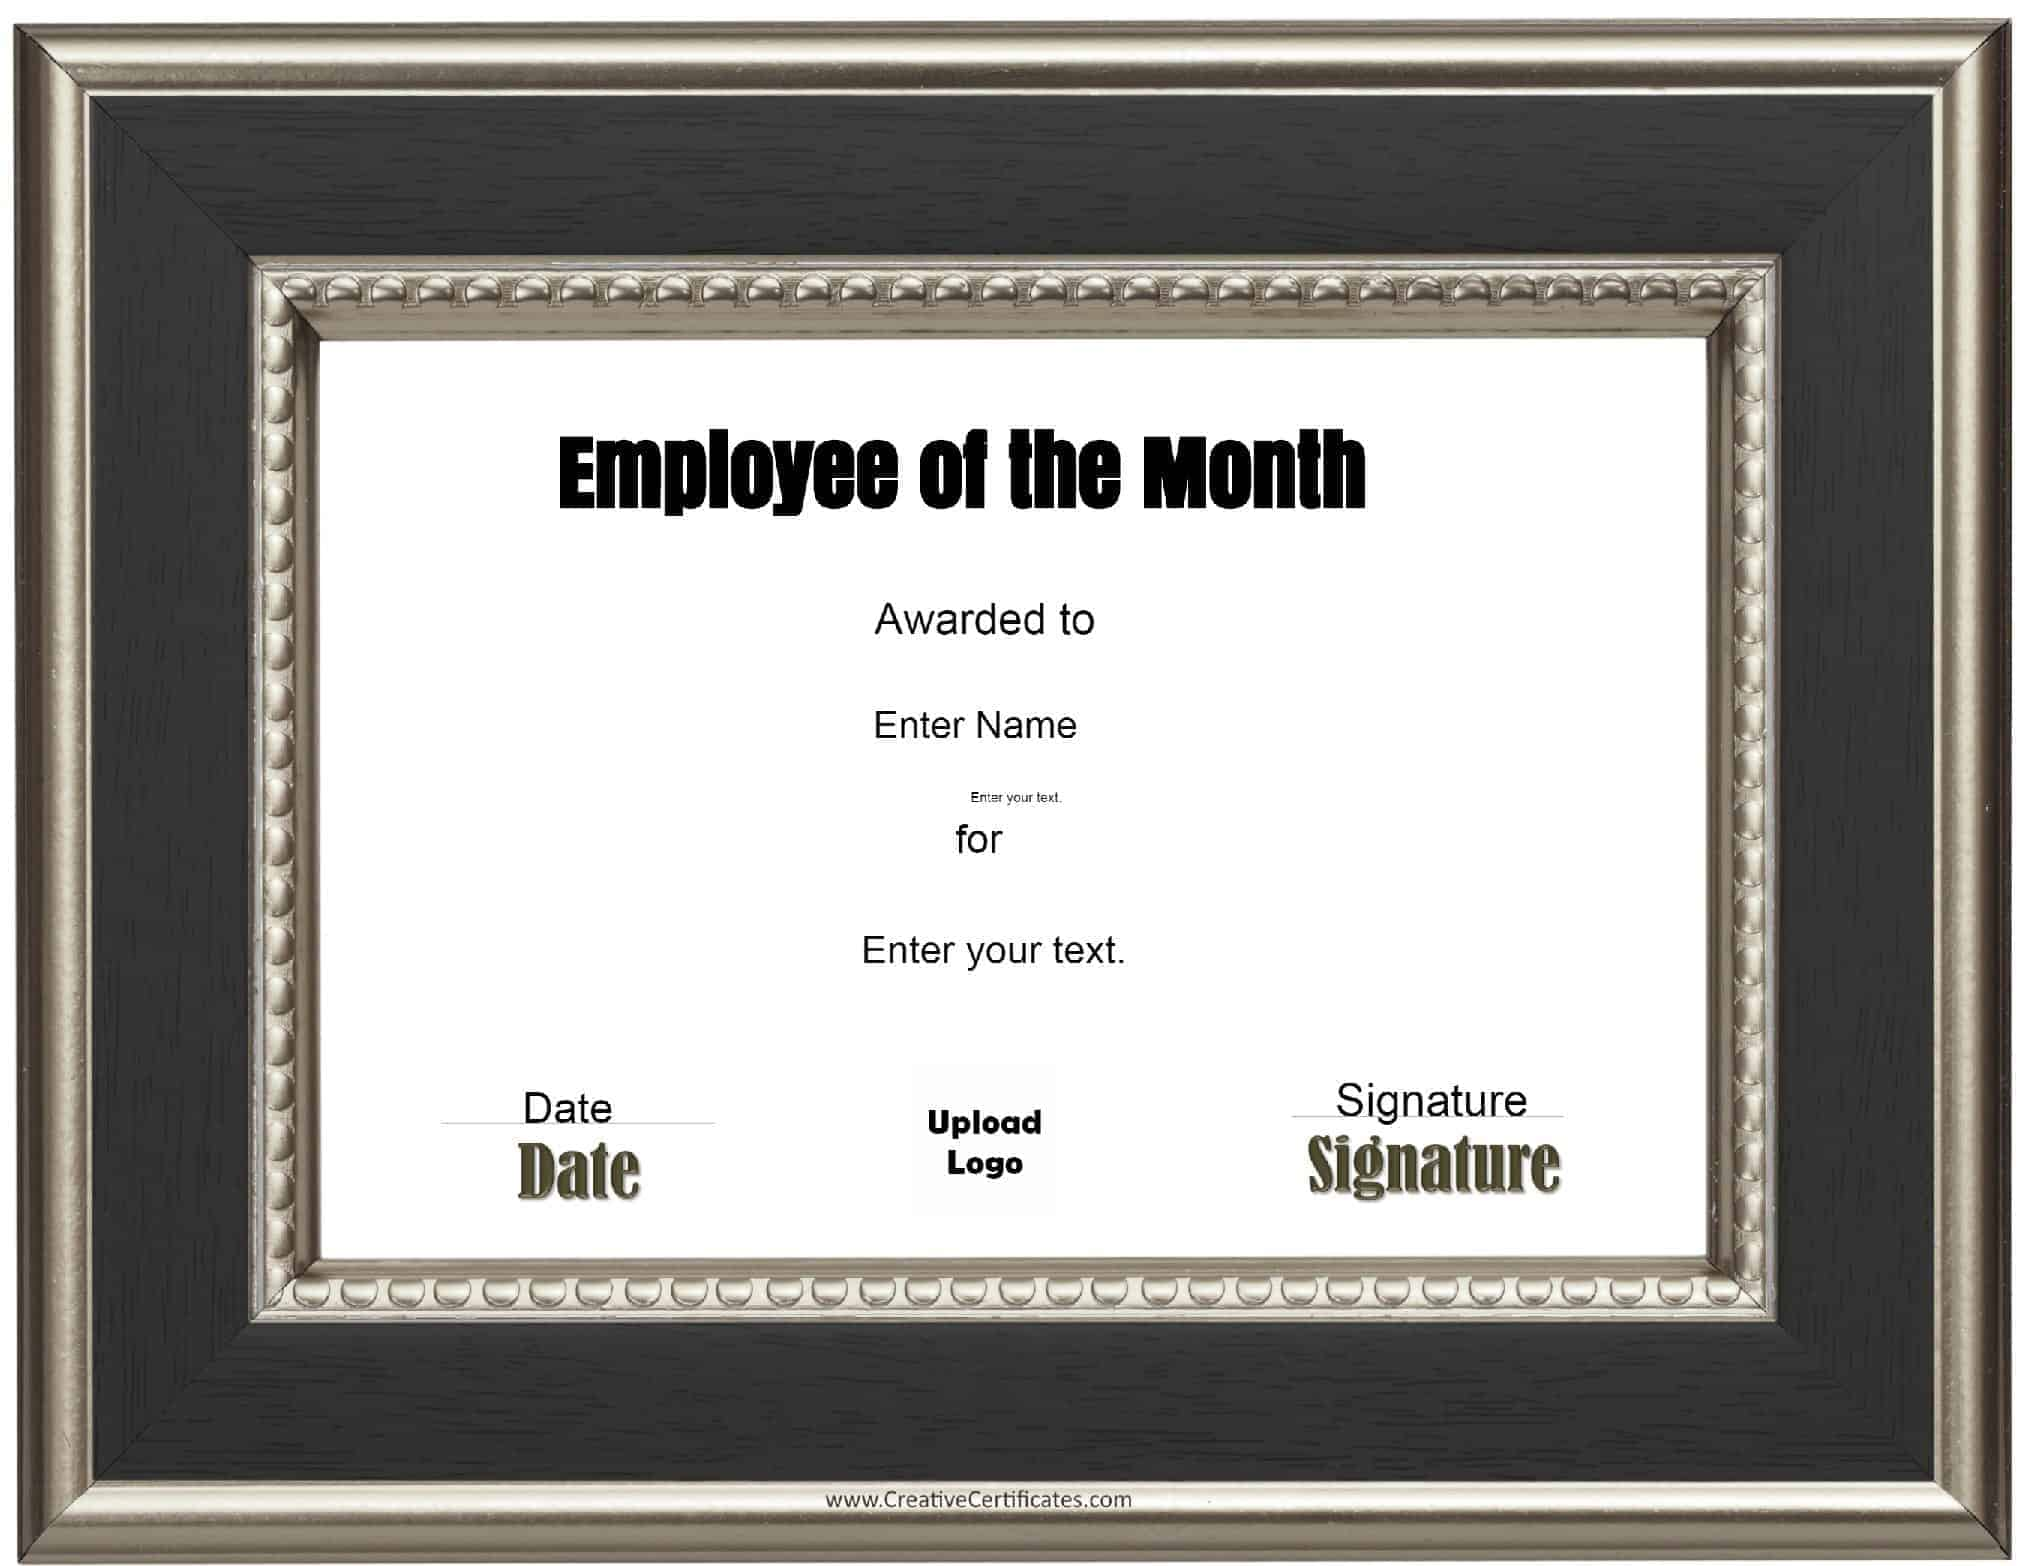 Employee Certificate Templates Free Free Custom Employee Of The Month Certificate